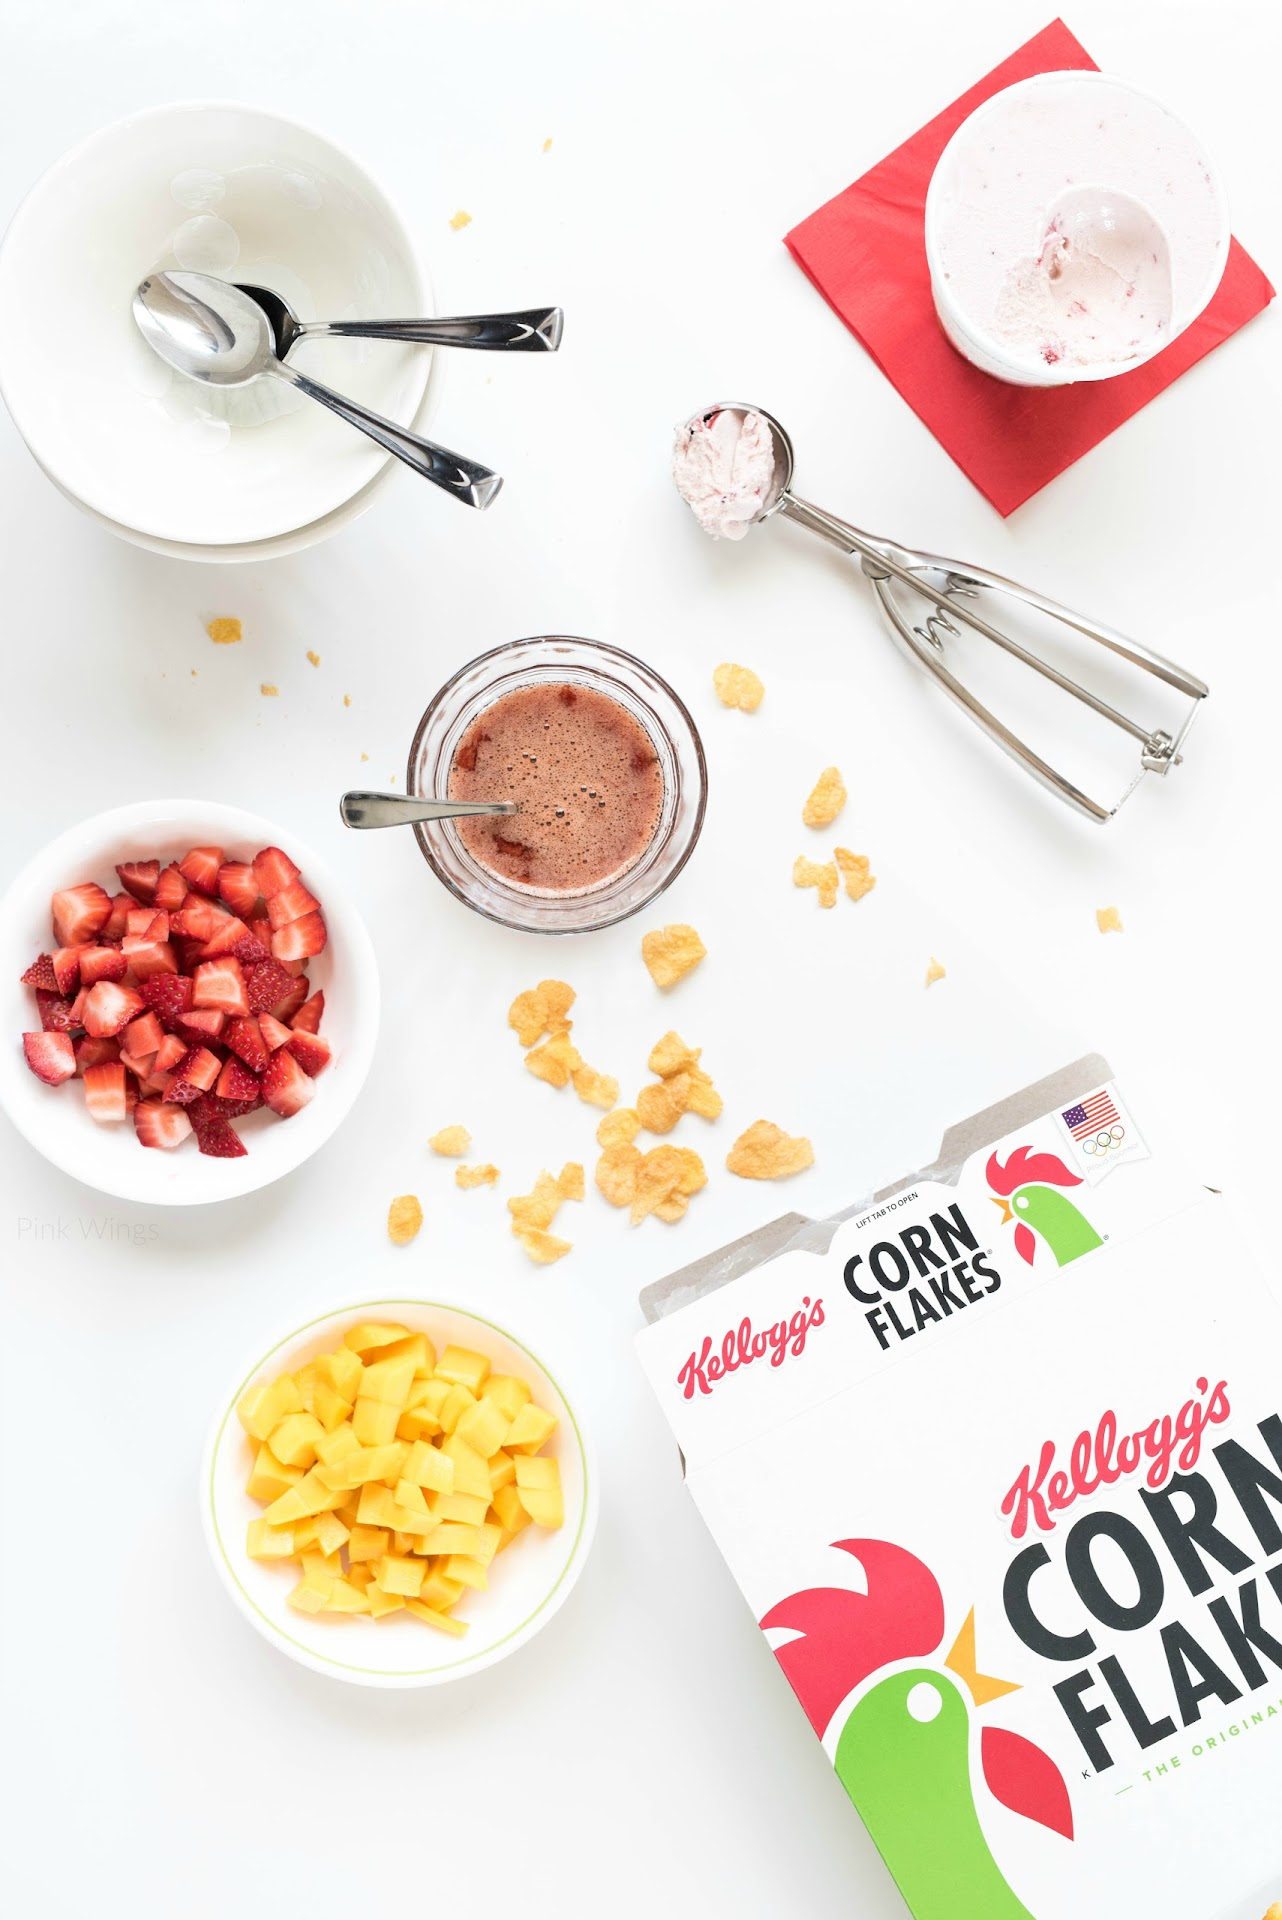 recipes with cereal, corn flakes, kellogg's, ingredients food photography, lds food blogger, mormon, asian food blog